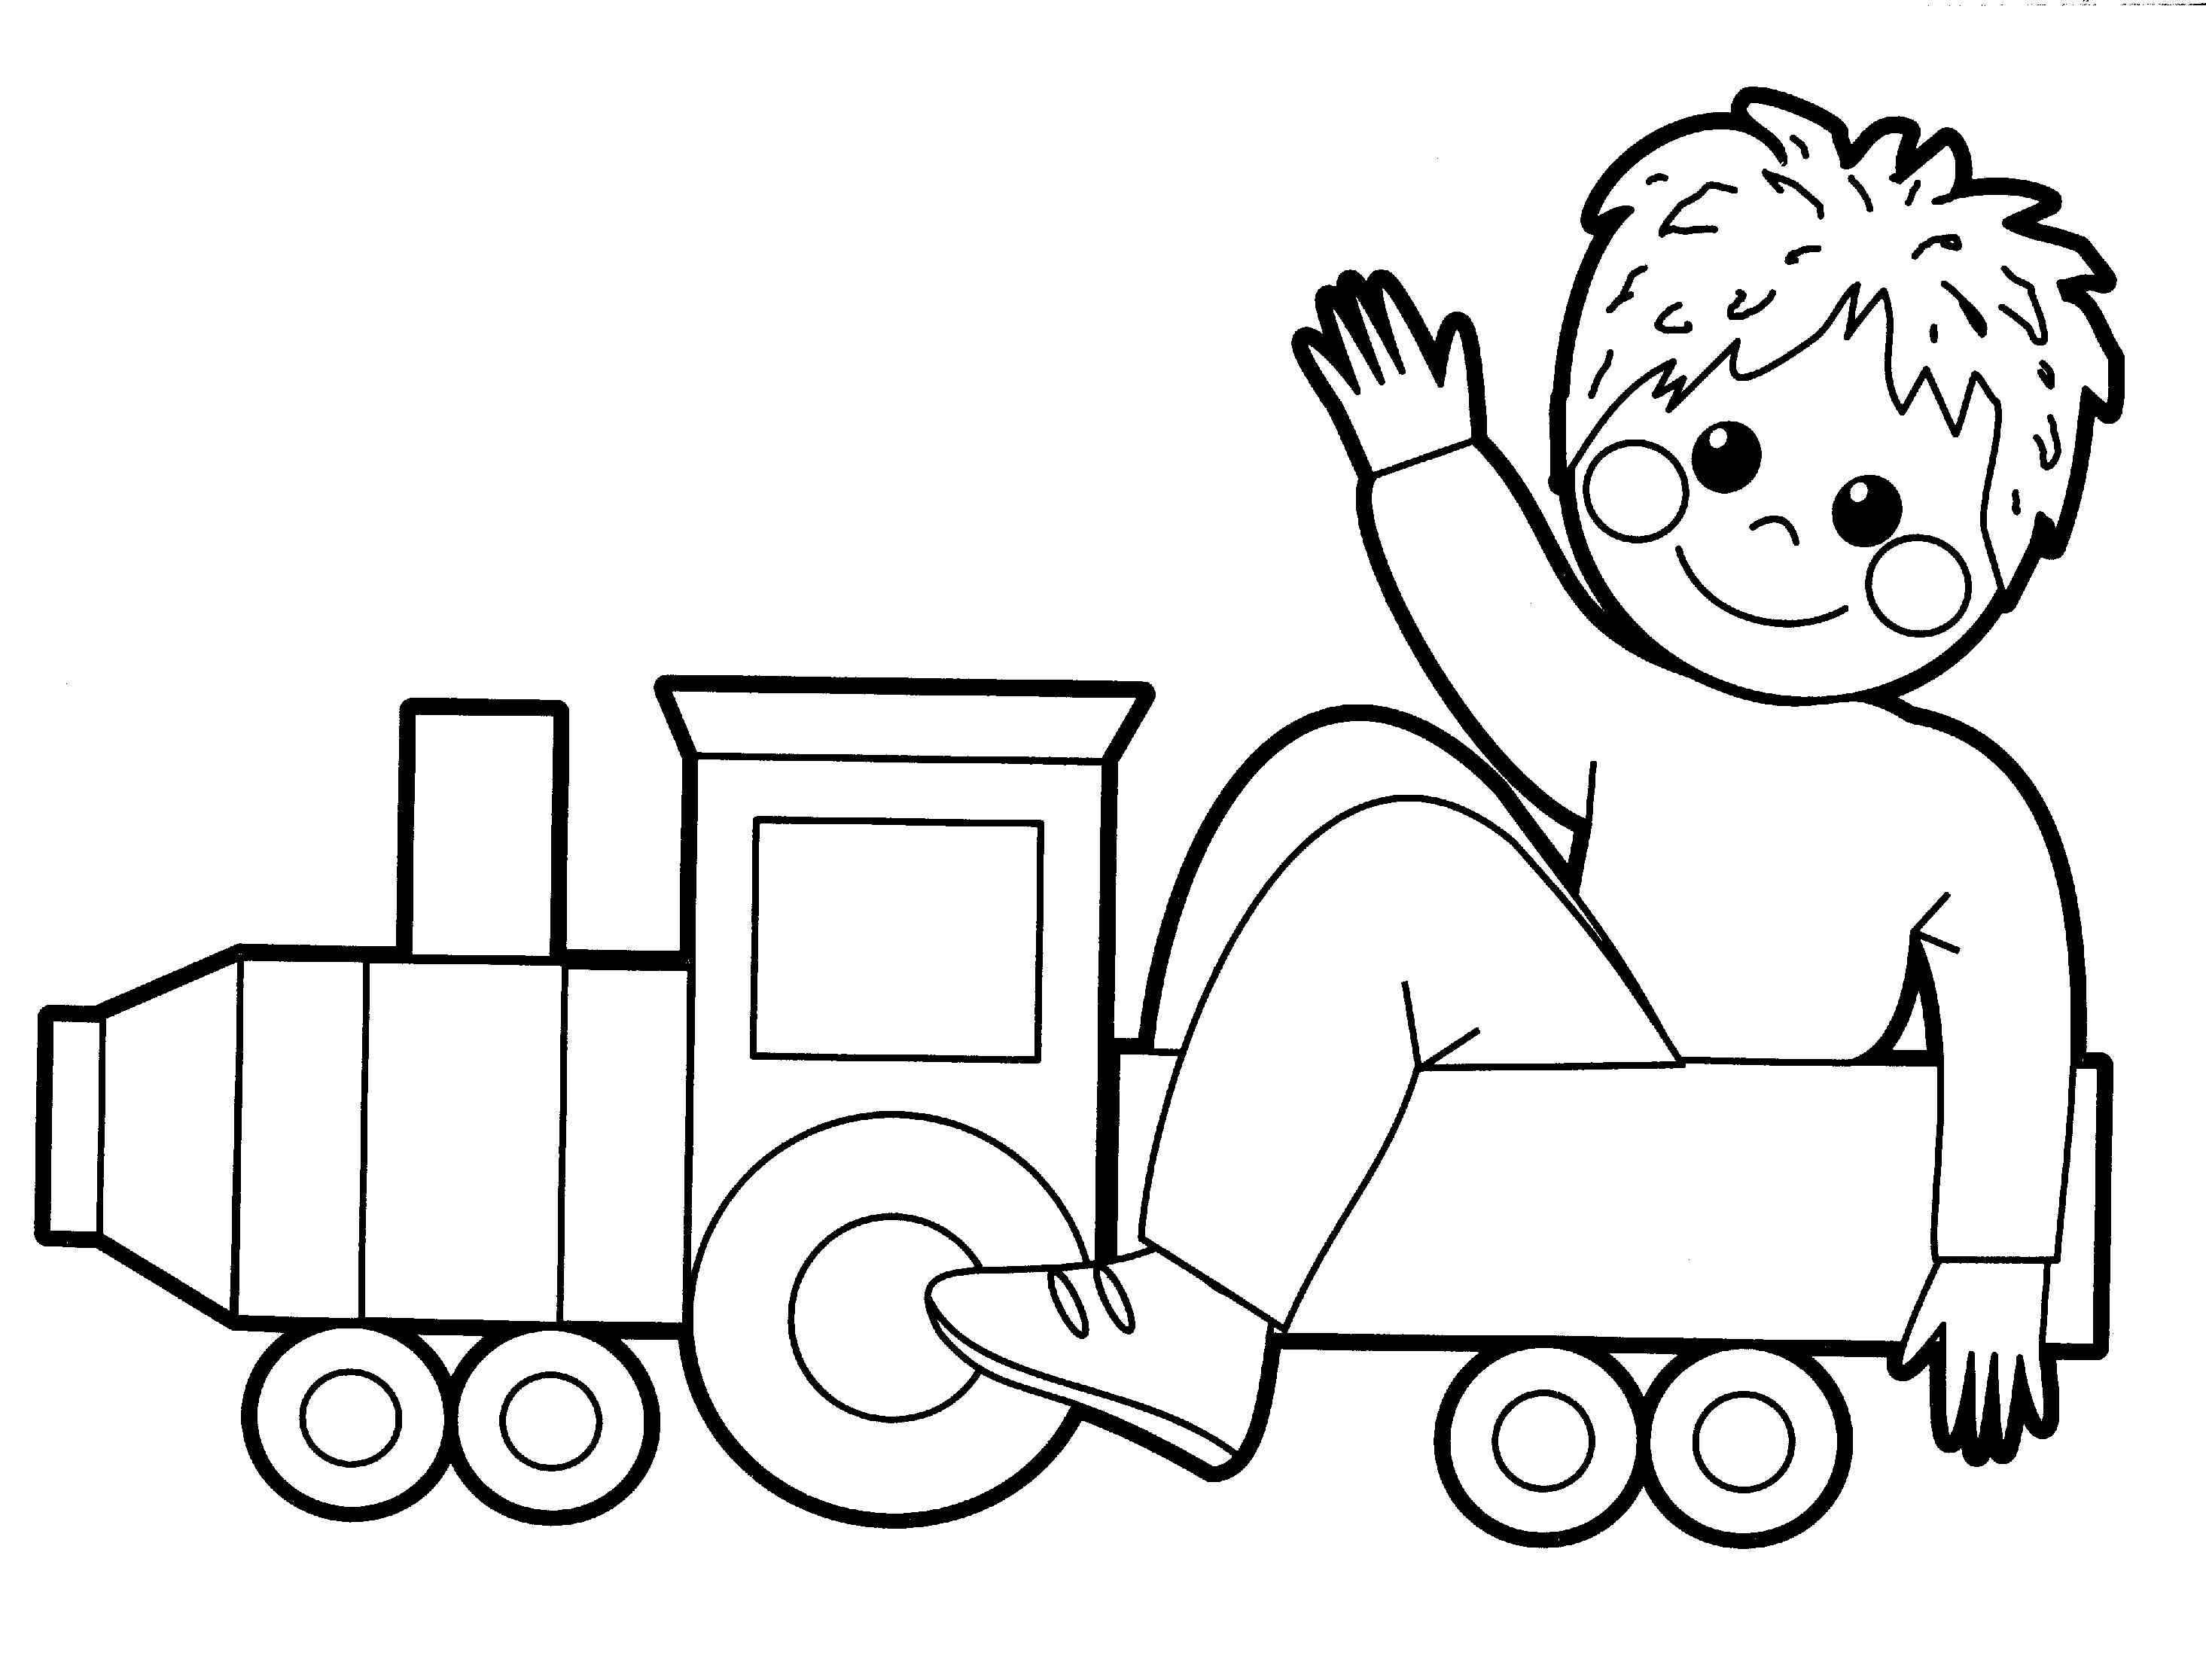 Thank you for visiting Toys colouring picture Of Train, we